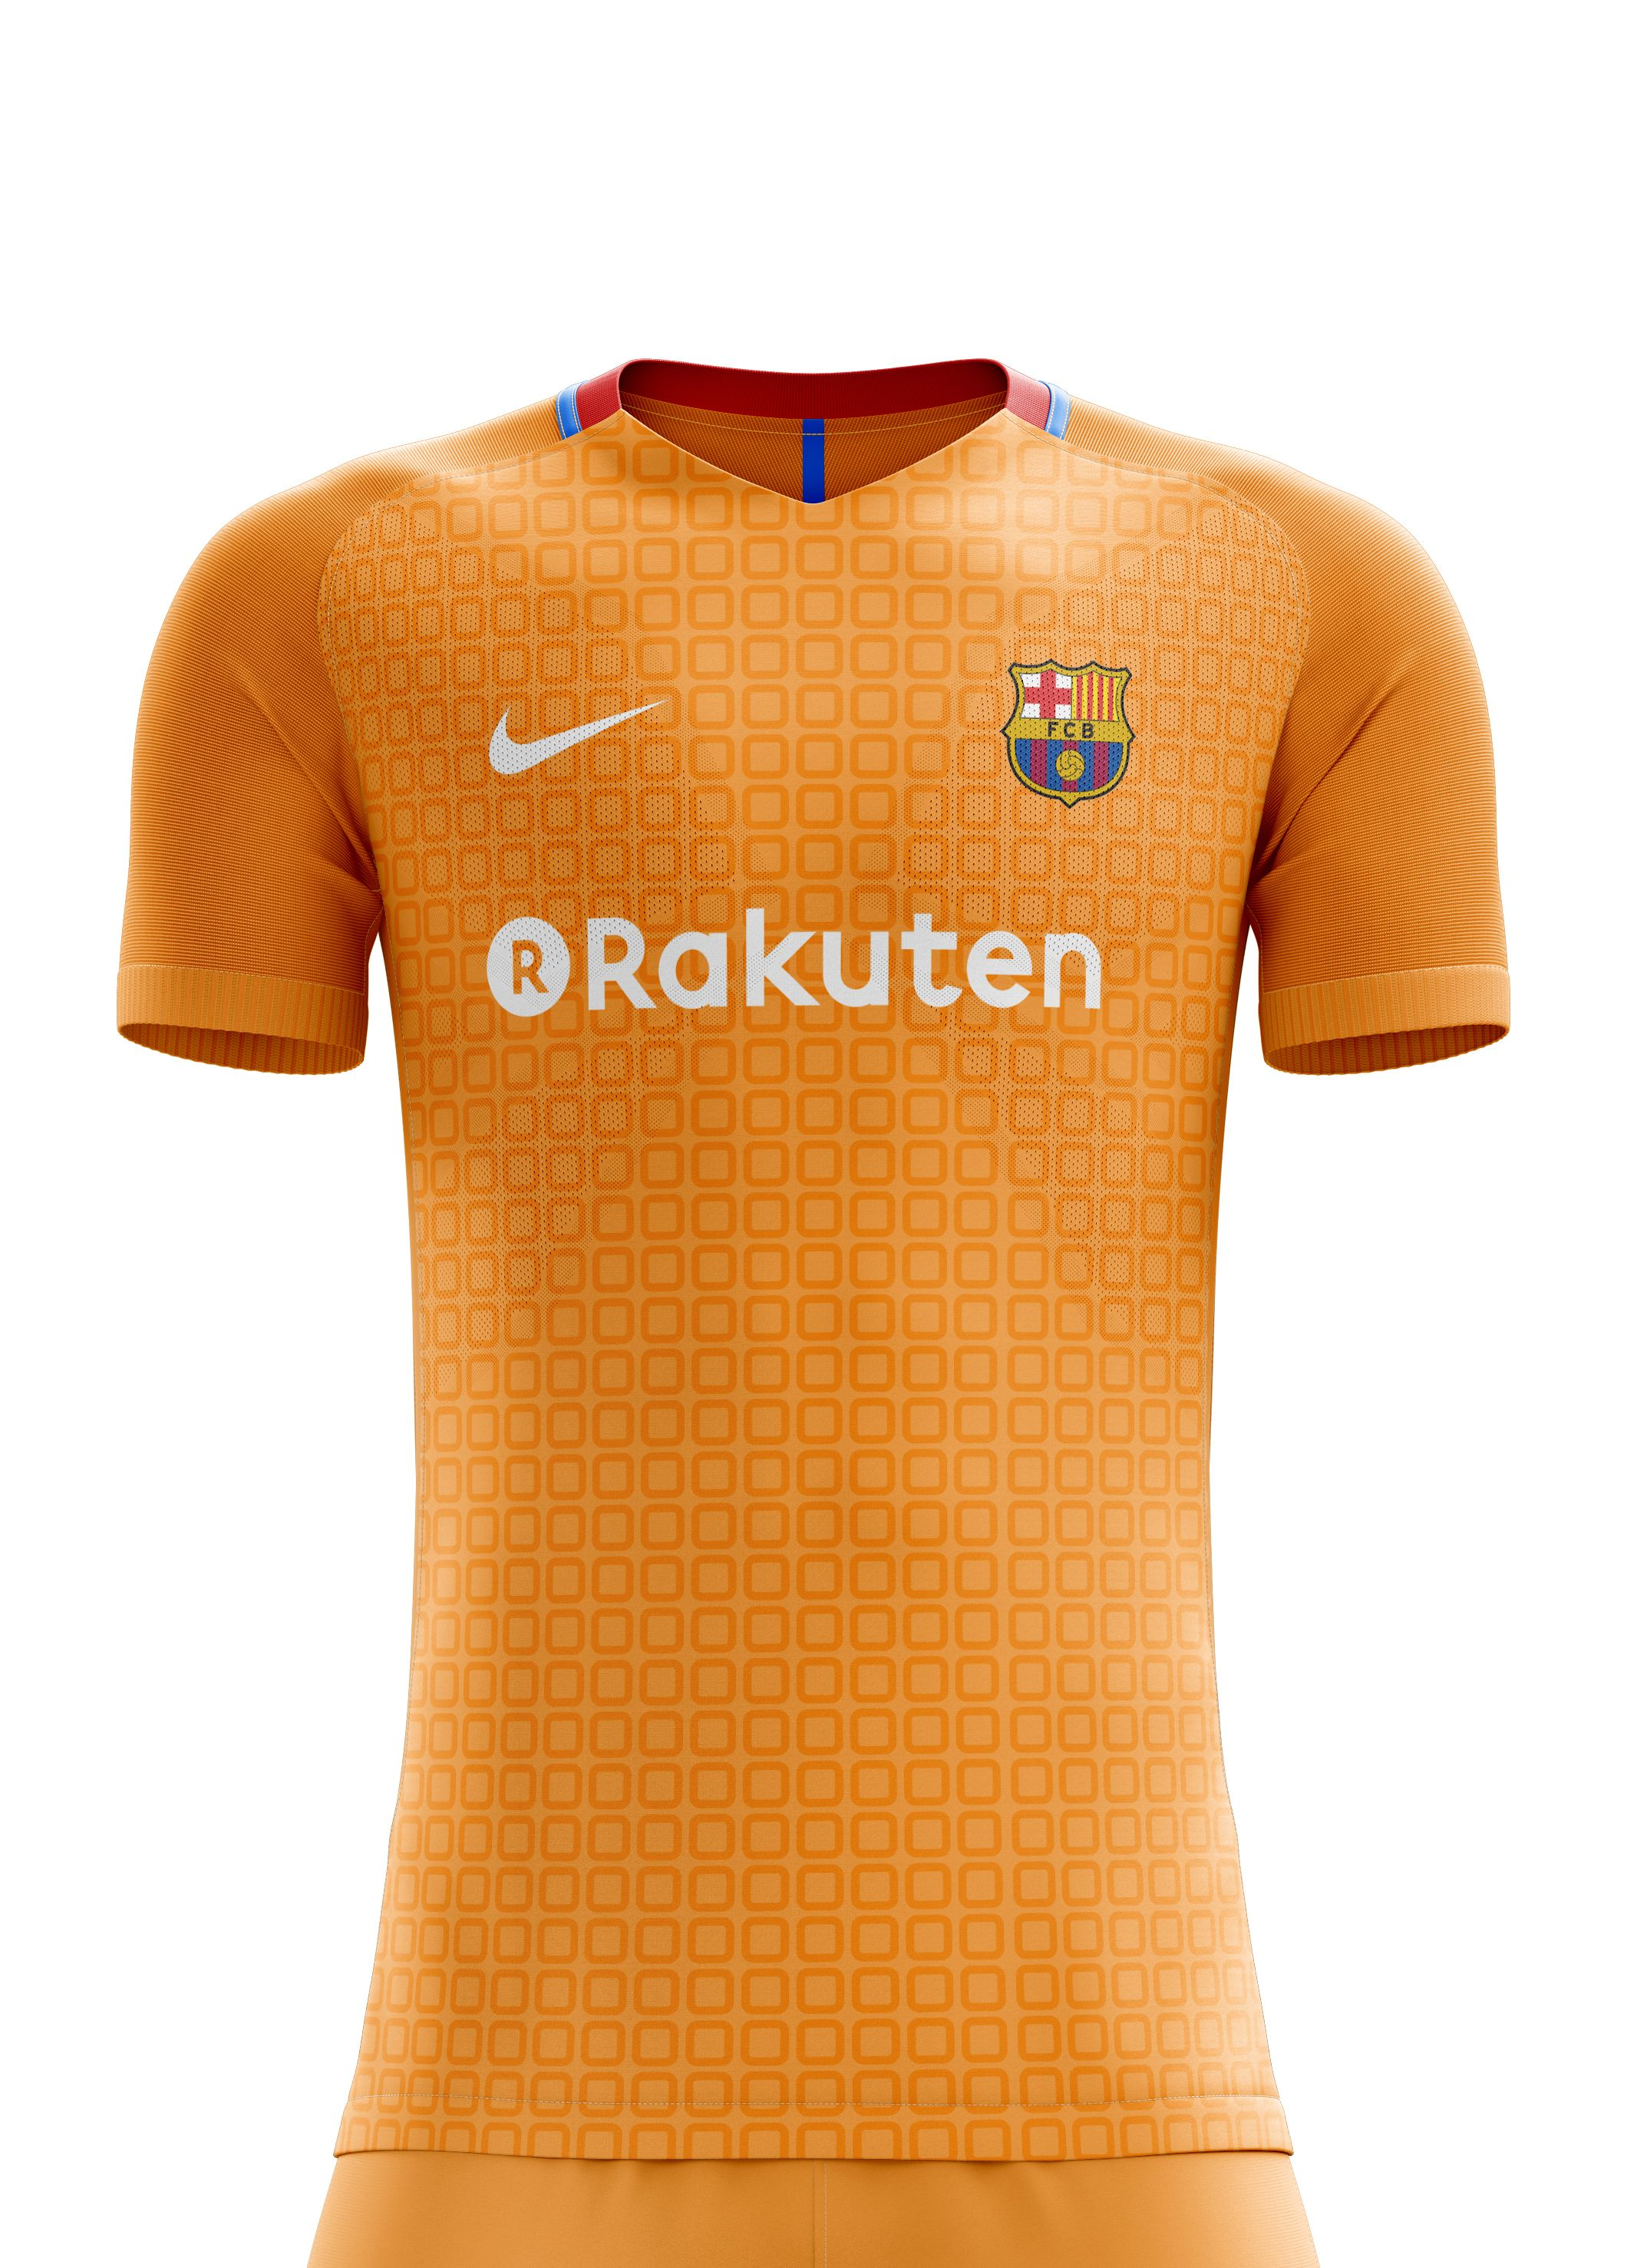 4c016e1ec08 I designed football kits for FC Barcelona for the upcoming season 18/19.  the home kit is inspired by shape of ...